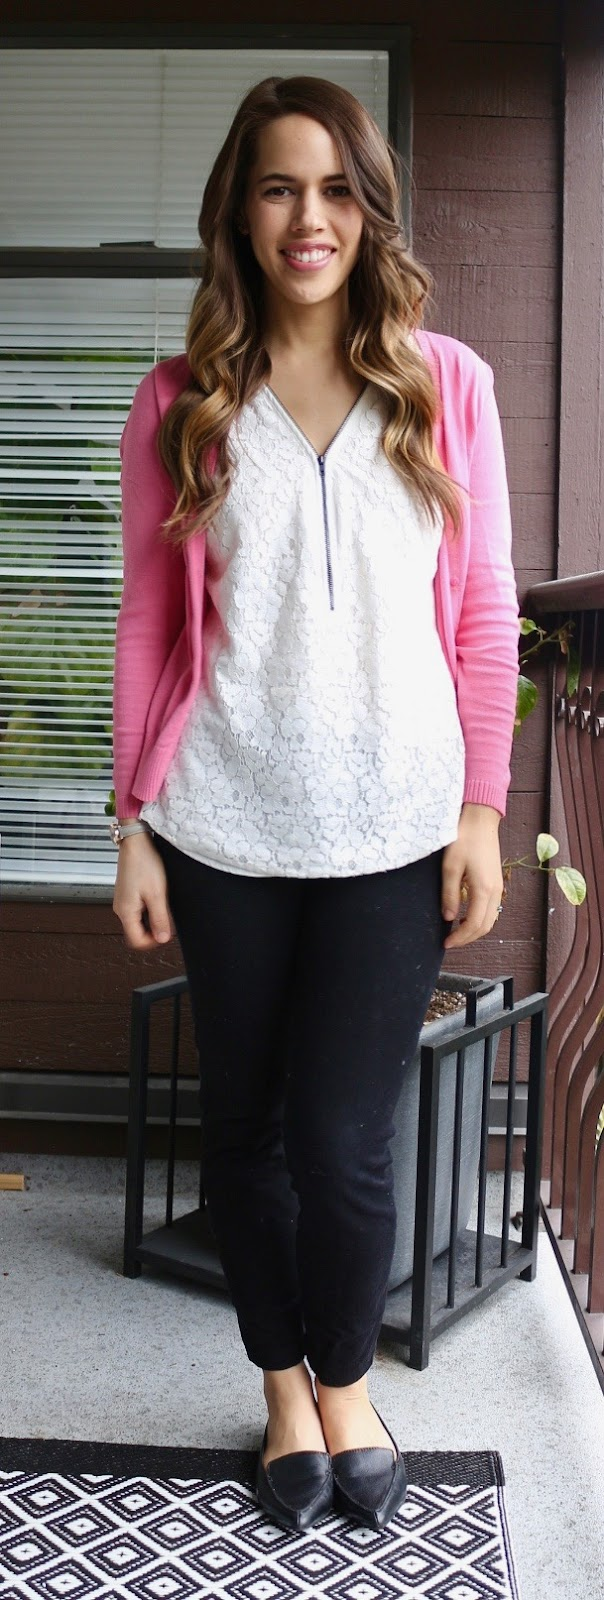 Jules in Flats - Lace Zip Front Tank and Pink Cardigan